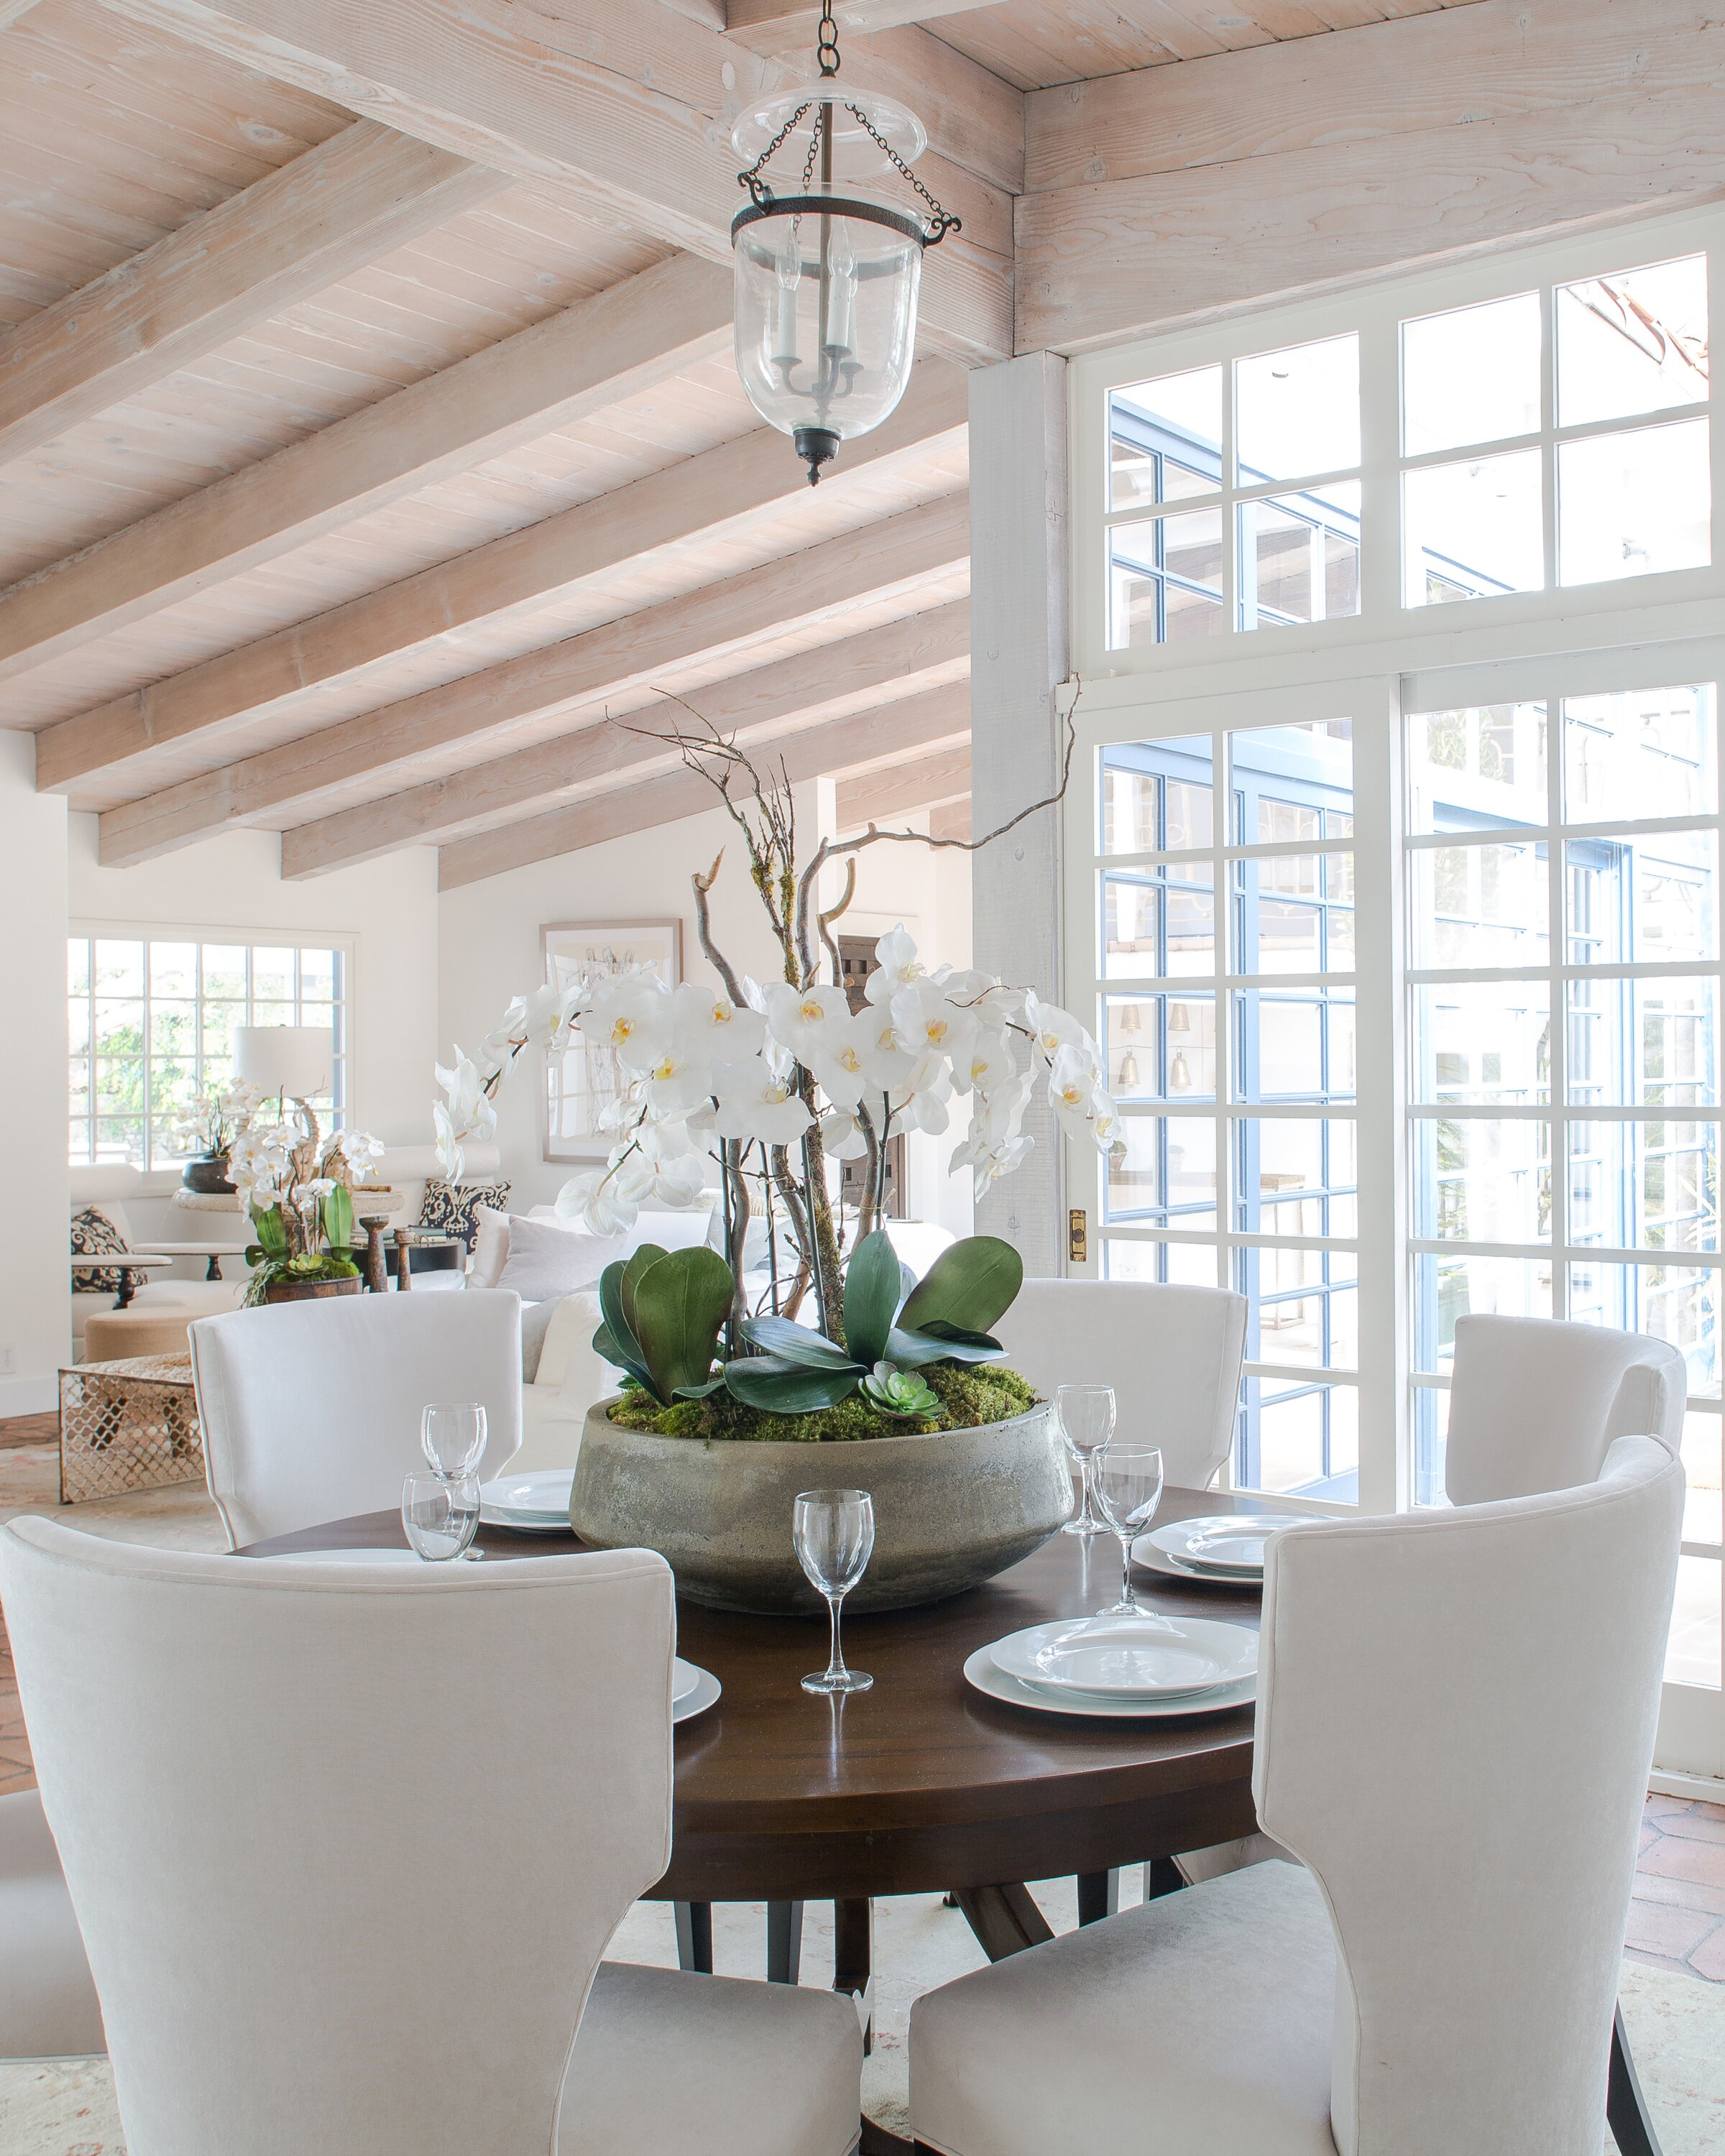 images?q=tbn:ANd9GcQh_l3eQ5xwiPy07kGEXjmjgmBKBRB7H2mRxCGhv1tFWg5c_mWT Awesome Dining Room Update Ideas @house2homegoods.net